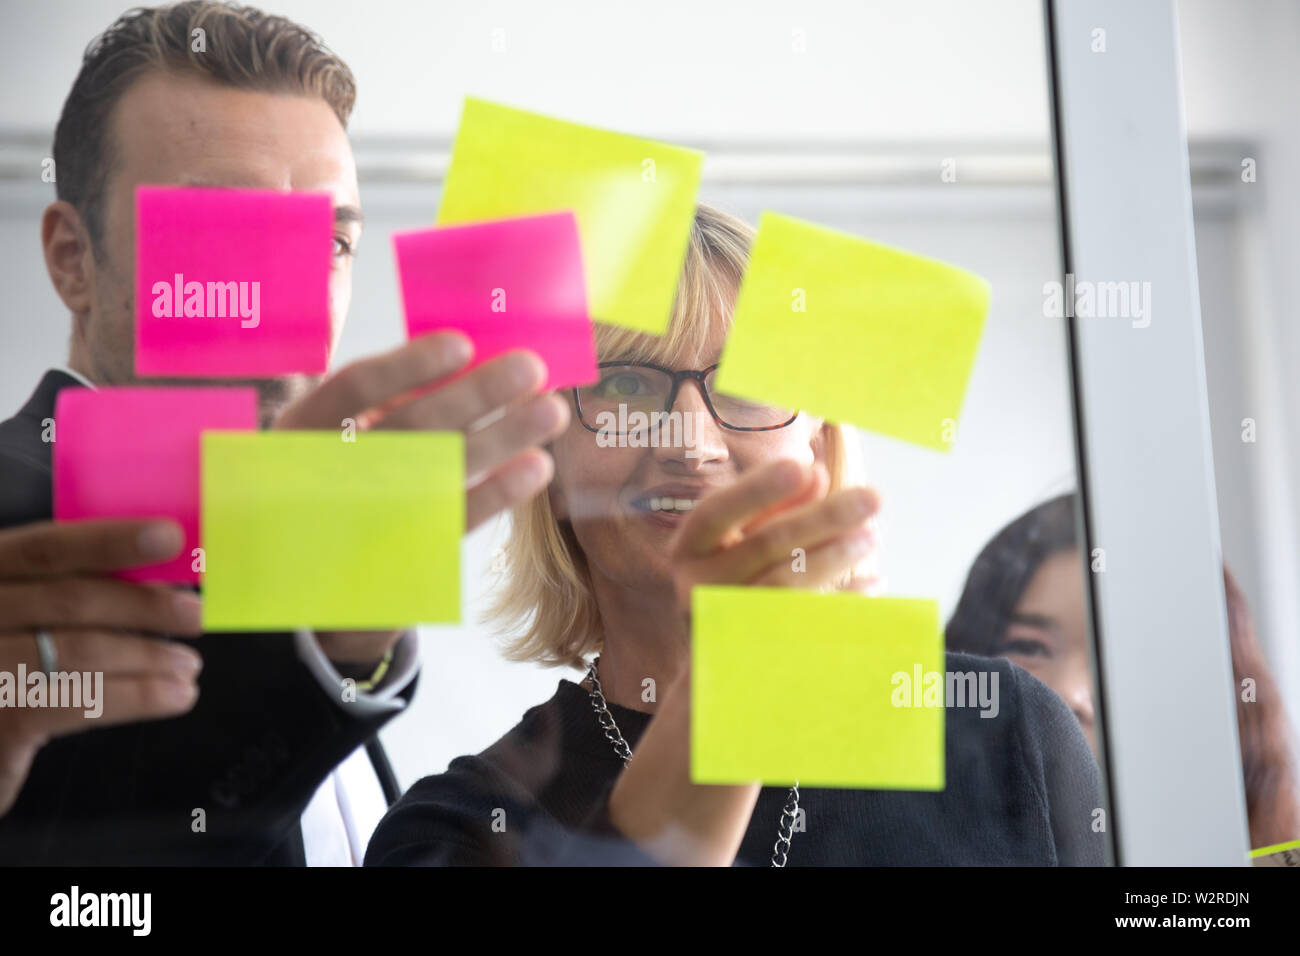 IT worker tracking his tasks on kanban board. Using task control of agile development methodology. Team members attaching sticky note to scrum task bo - Stock Image